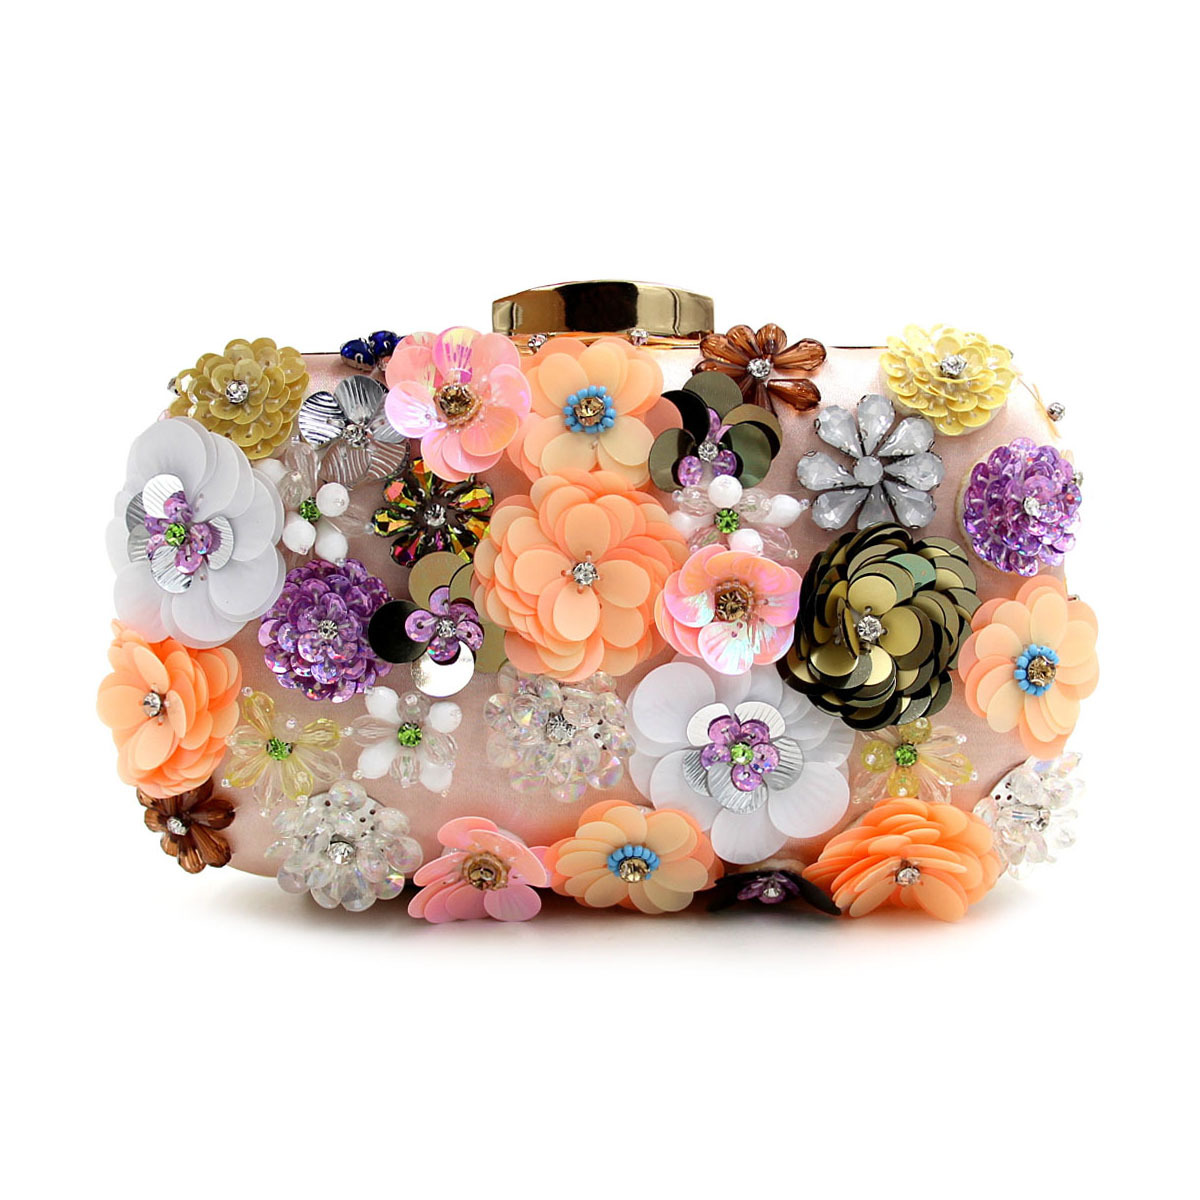 Clutches Women Pink Sequins Bead Flowers Ladies Evening Bags For Wedding Party Purses Diamond Embroidered Clutch Evening Bag purple mini diamond bag women shoulder bags women clutch bags ladies evening bag for party clutches purses and handbag 88632f